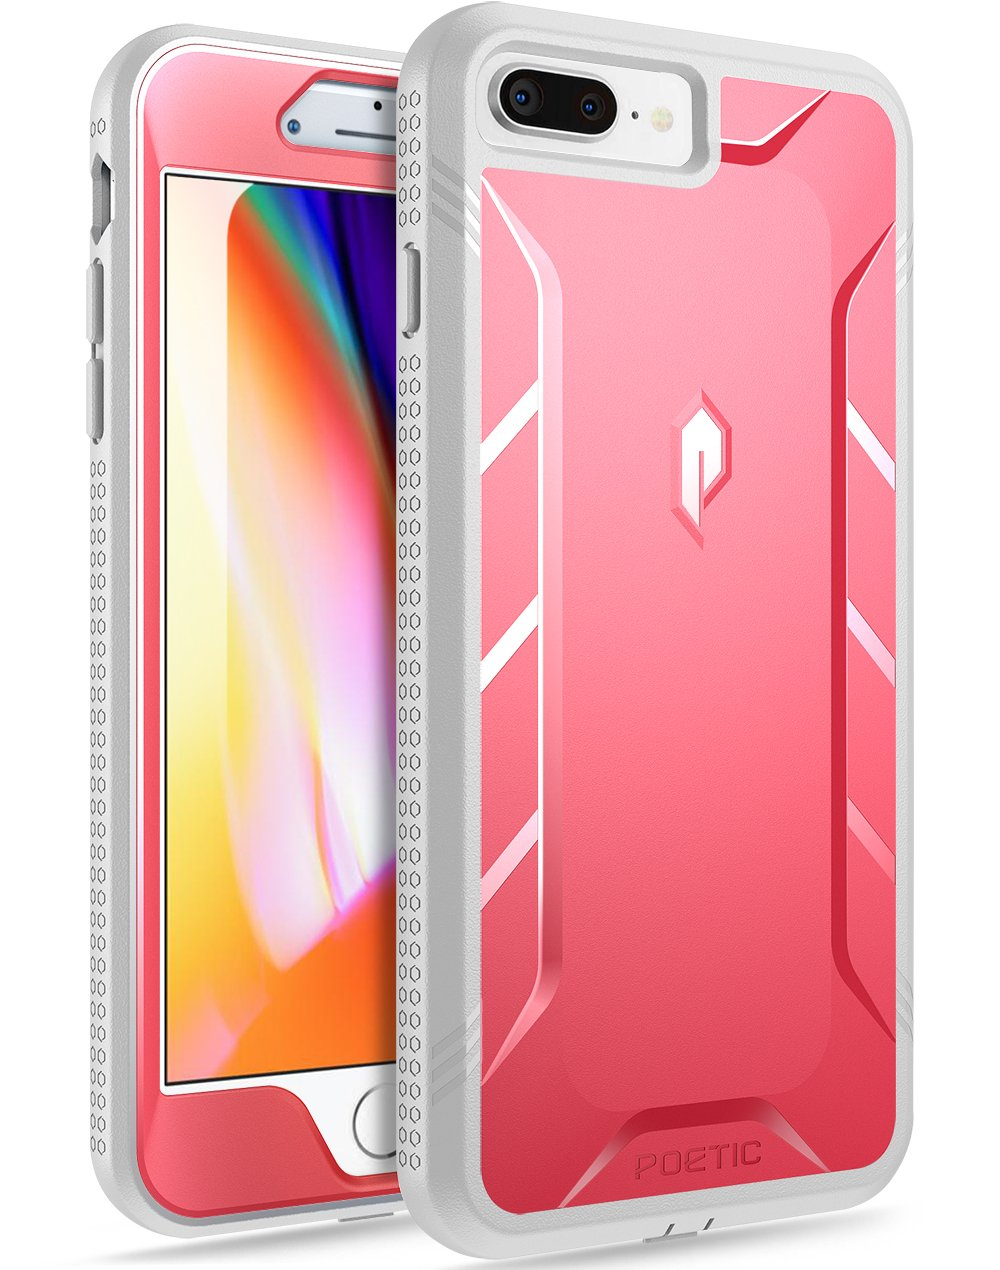 online retailer 81eda 59904 Poetic iPhone 7 Plus/iPhone 8 Plus Case, Revolution [360 Degree Protection]  Full-Body Rugged Heavy Duty Case w/Built-in-Screen Protector for Apple ...